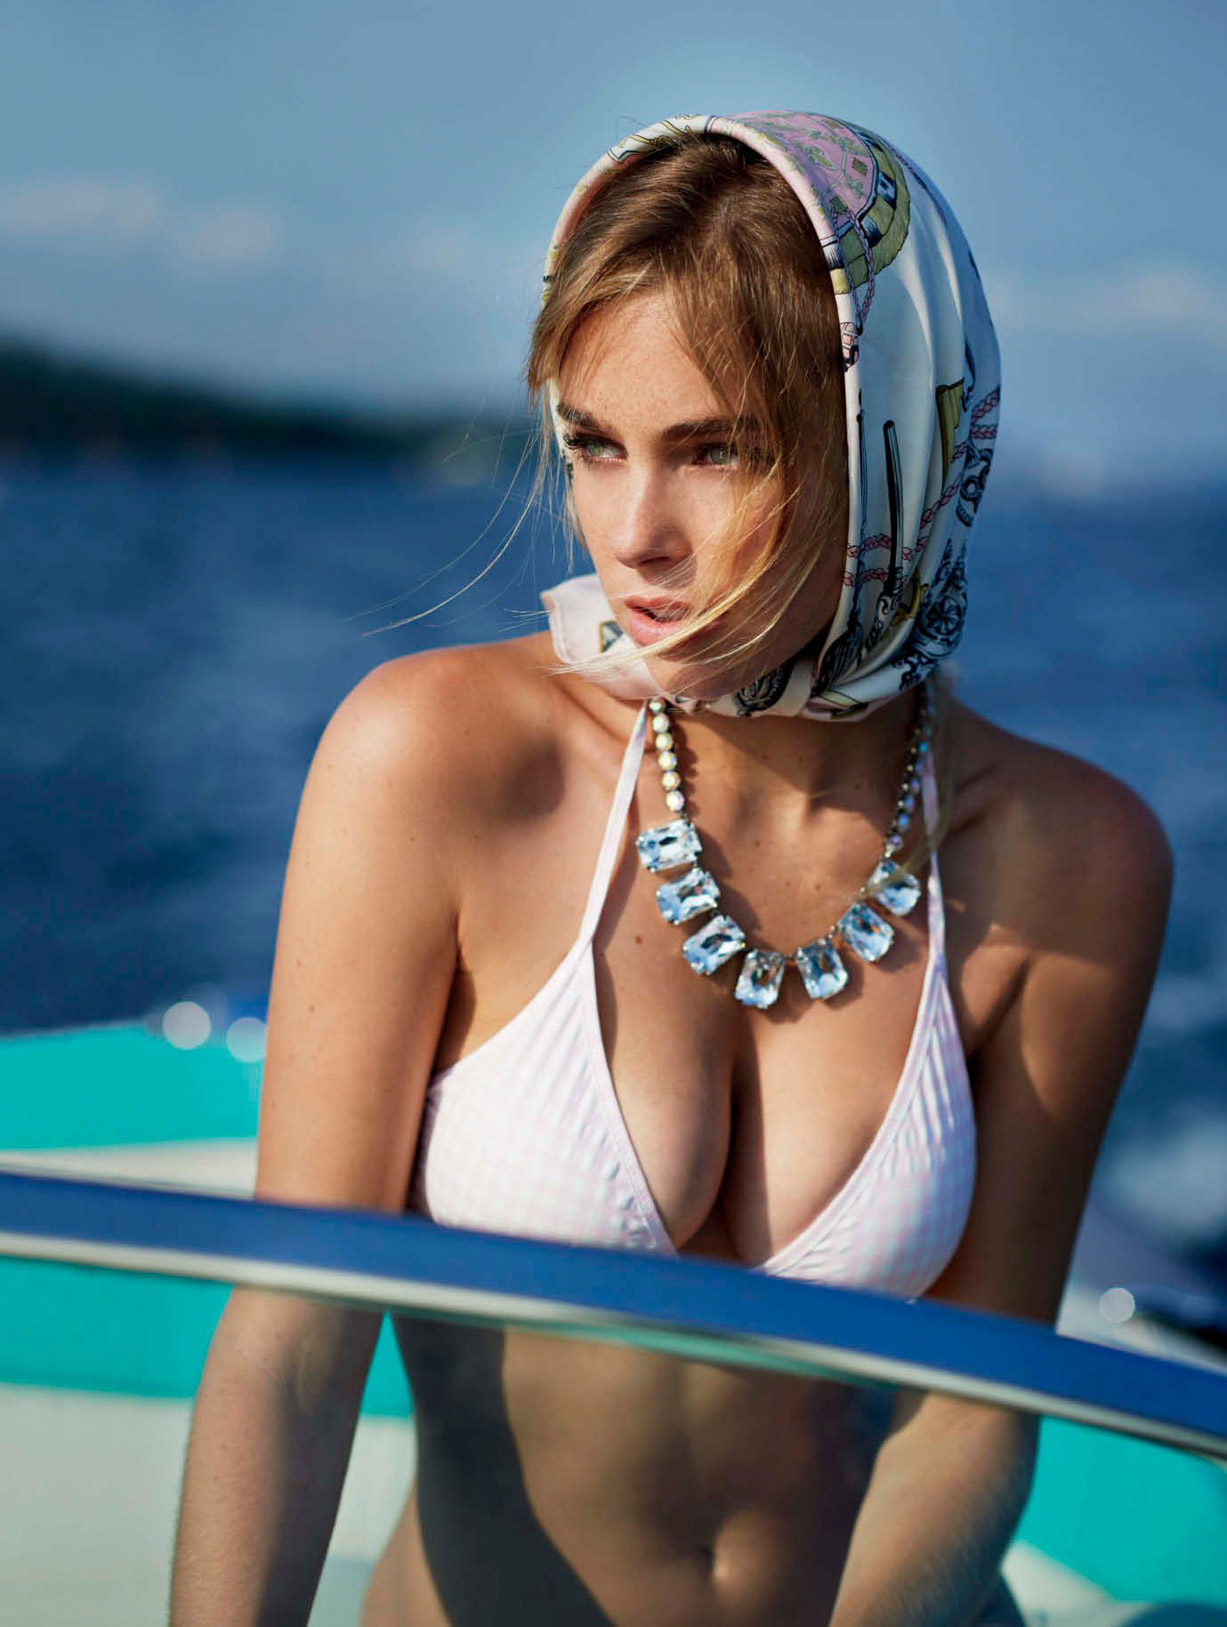 Elizabeth Turner / Элизабет Тернер в журнале Maxim US september 2016 / photo by Gilles Bensimon